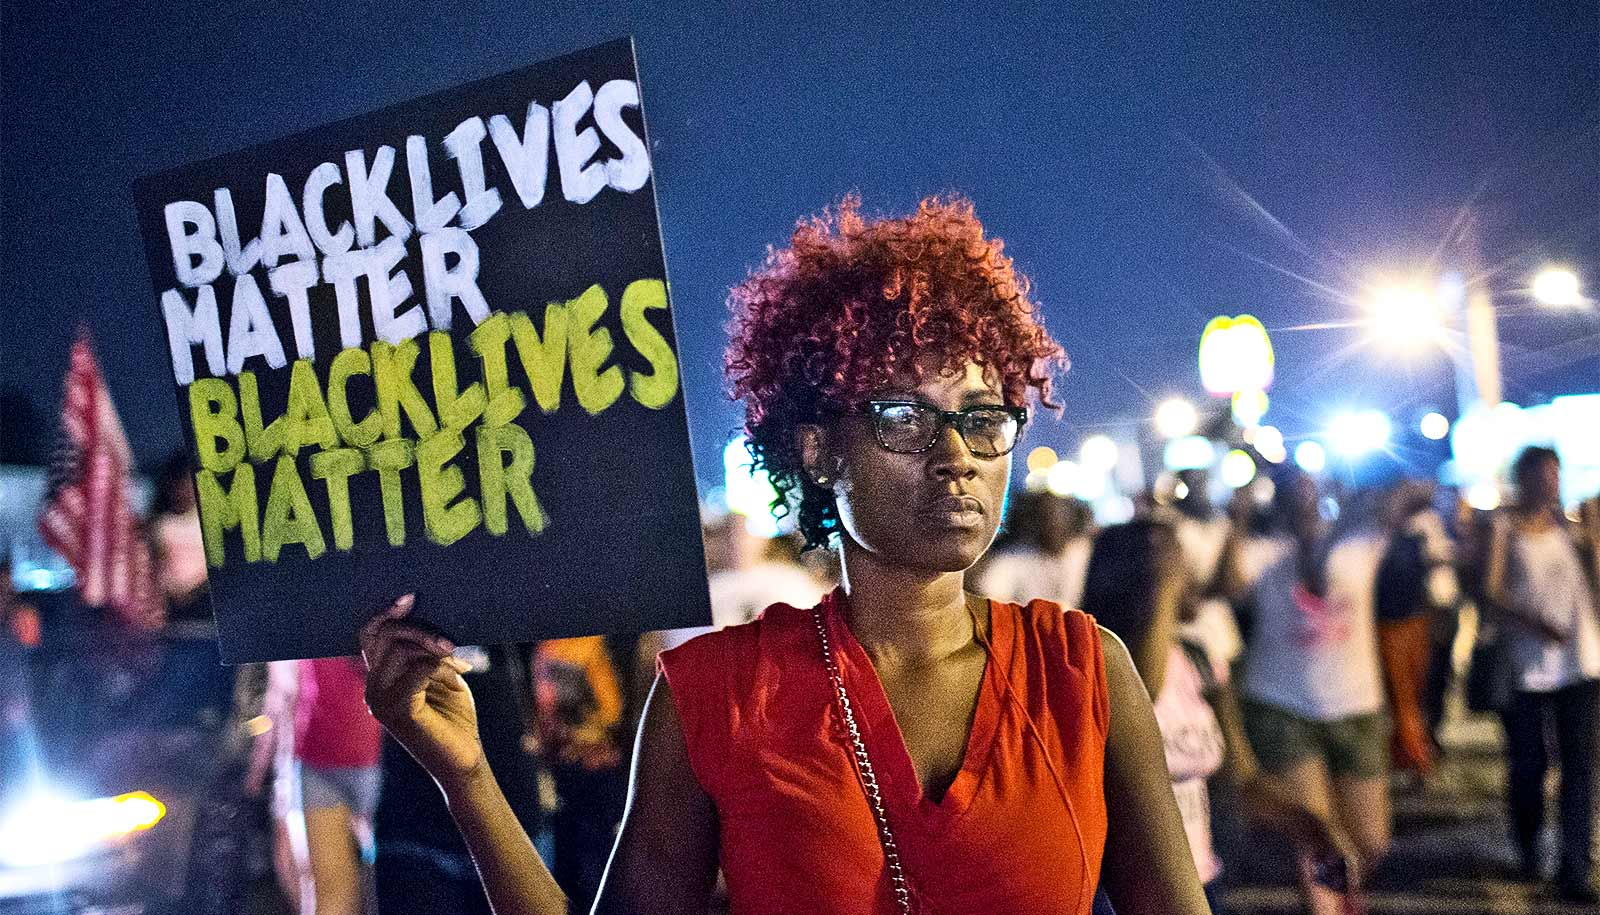 Stories offer protesters' views of Ferguson, Baltimore police